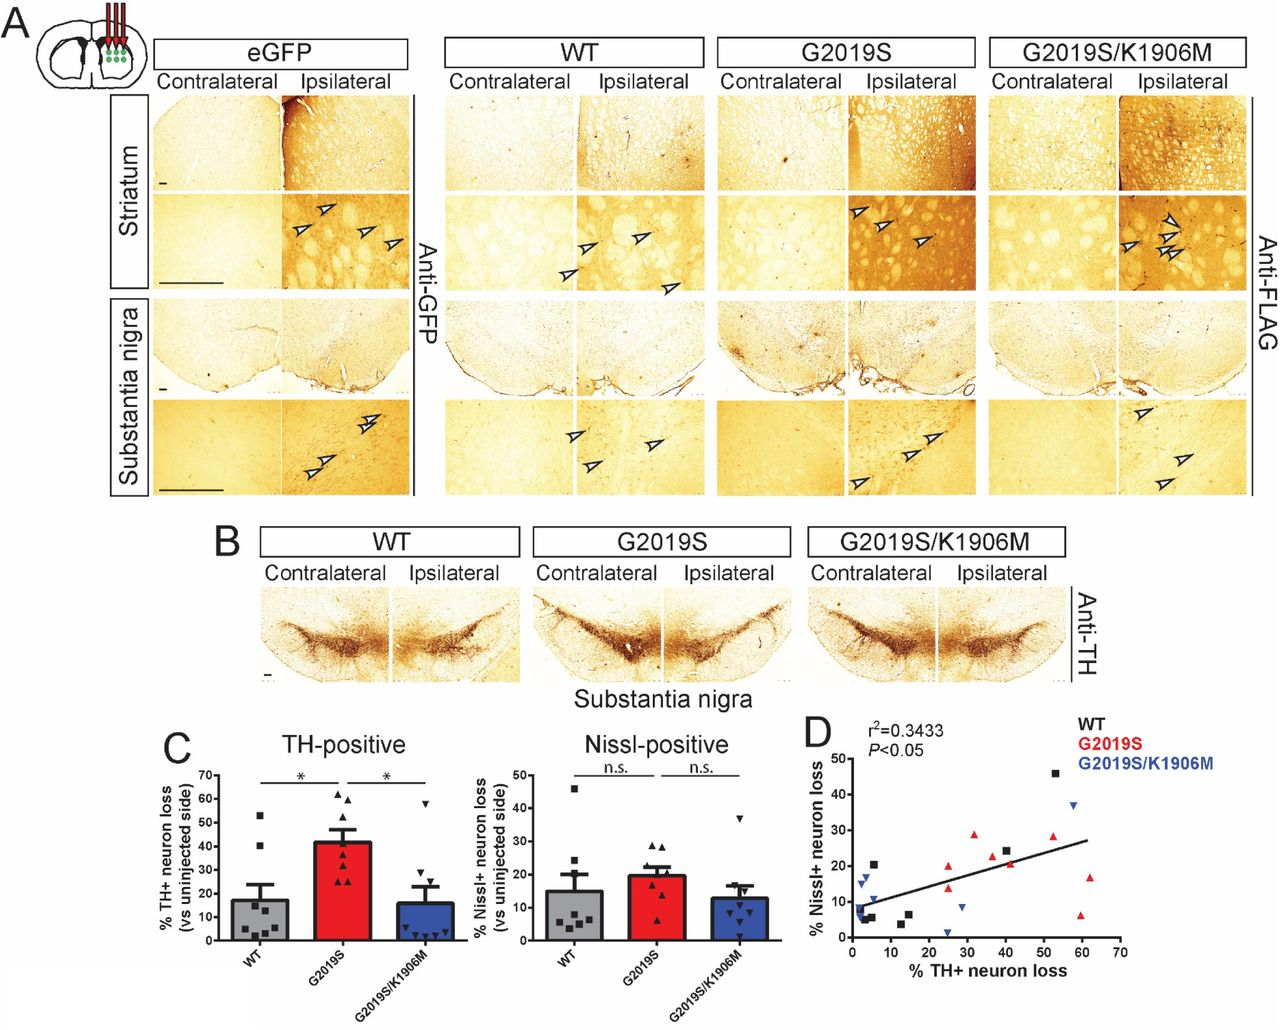 Intrastriatal delivery of Ad5-LRRK2-G2019S induces kinase-dependent dopaminergic neurodegeneration in adult rat brain. A) Ad5-LRRK2 (WT, G2019S and G2019S/K1906M) vectors were unilaterally delivered at six injection sites (1.5 x 10 10 vp/site, in 2.5 μl) to the rat striatum. Immunohistochemistry reveals expression of eGFP (anti-GFP antibody) or human LRRK2 variants (anti-FLAG antibody) in the ipsilateral striatum and nigra that persists up to 42 days post-injection. Images indicate low and high magnification for each vector and brain region. Scale bars: 500 μm. B) Immunohistochemistry revealing dopaminergic neurons (anti-TH antibody) in contralateral and ipsilateral substantia nigra at 42 days post-delivery of Ad5 vectors. All sections were counterstained with Cresyl violet. Scale bars: 500 μm. C) Unbiased stereological analysis of TH-positive dopaminergic and total Nissl-positive neuron number in the substantia nigra at 42 days post-injection. Bars represent % neuronal loss in the injected ipsilateral nigra relative to the contralateral nigra (mean ± SEM, n = 8 animals/vector), * P